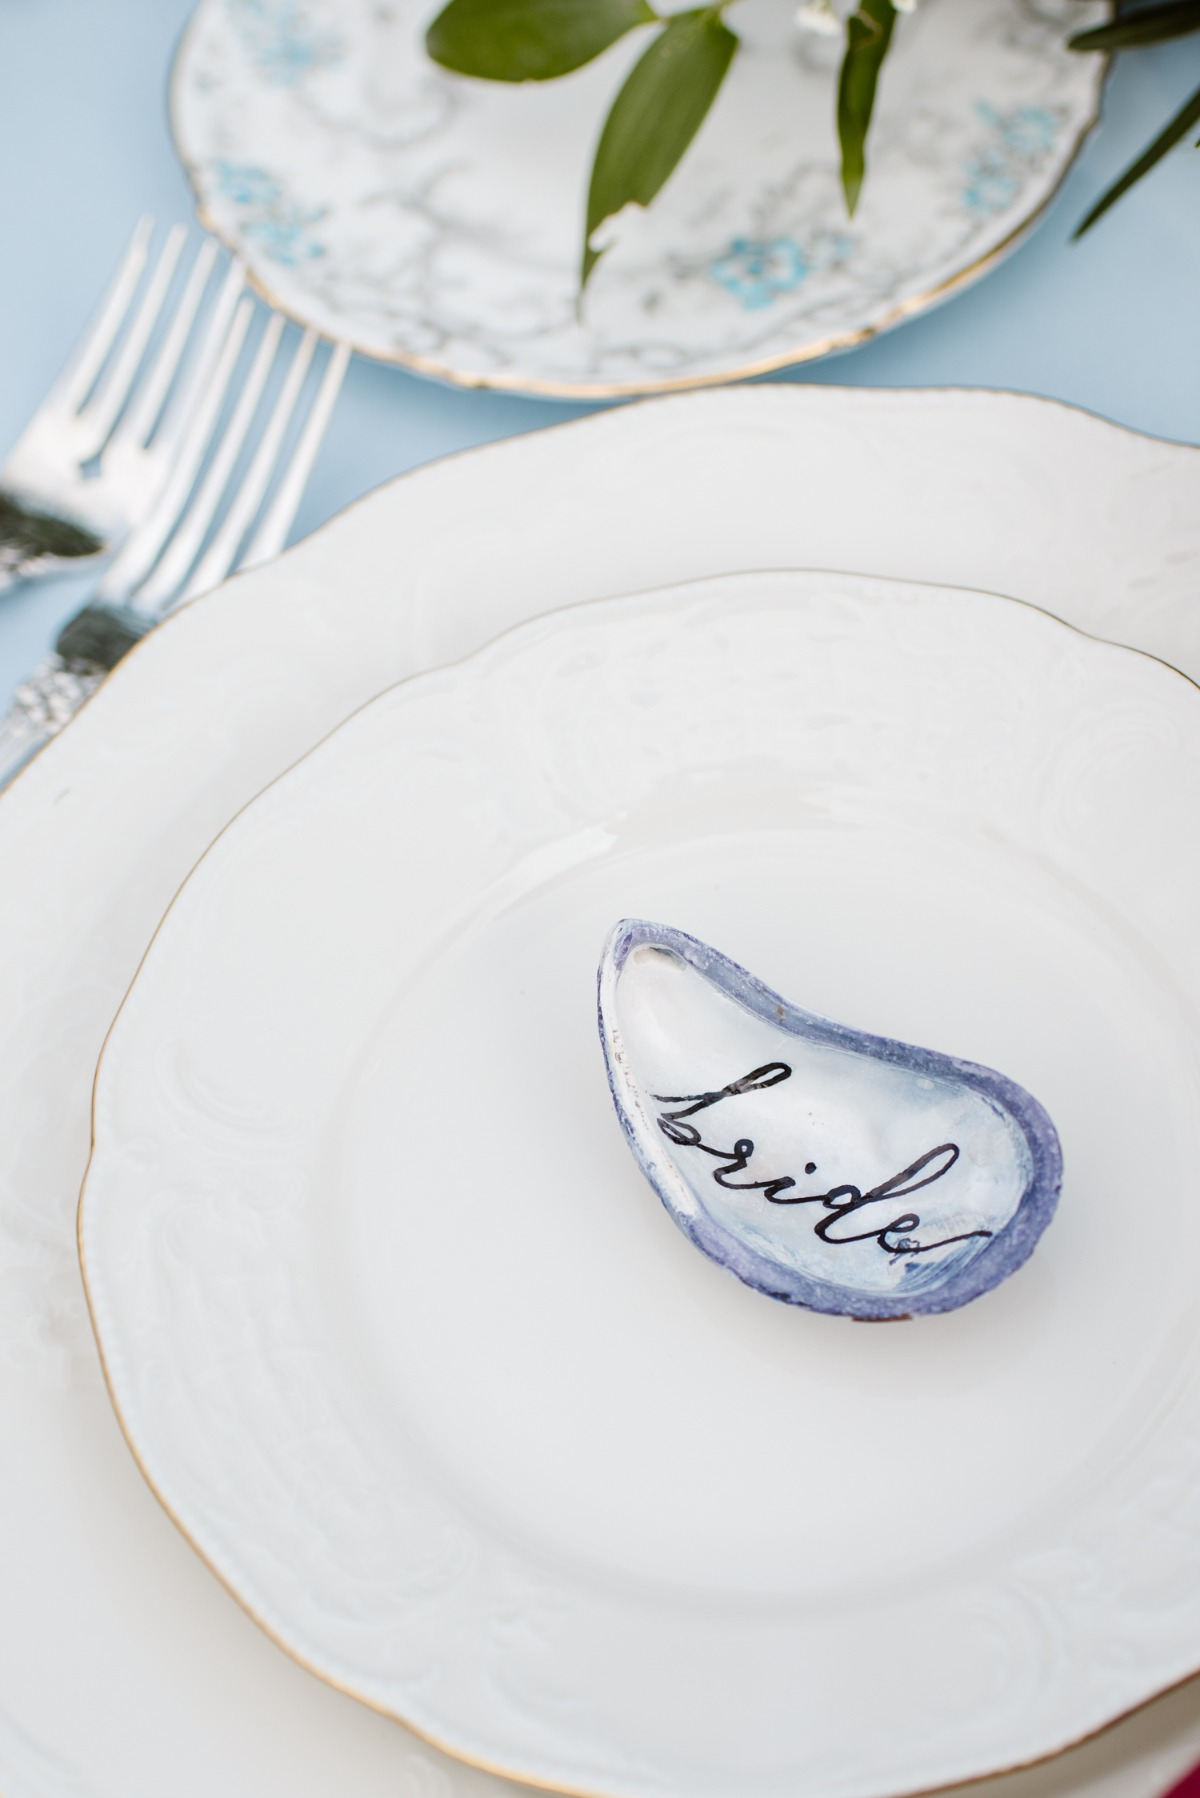 Seashell place card idea